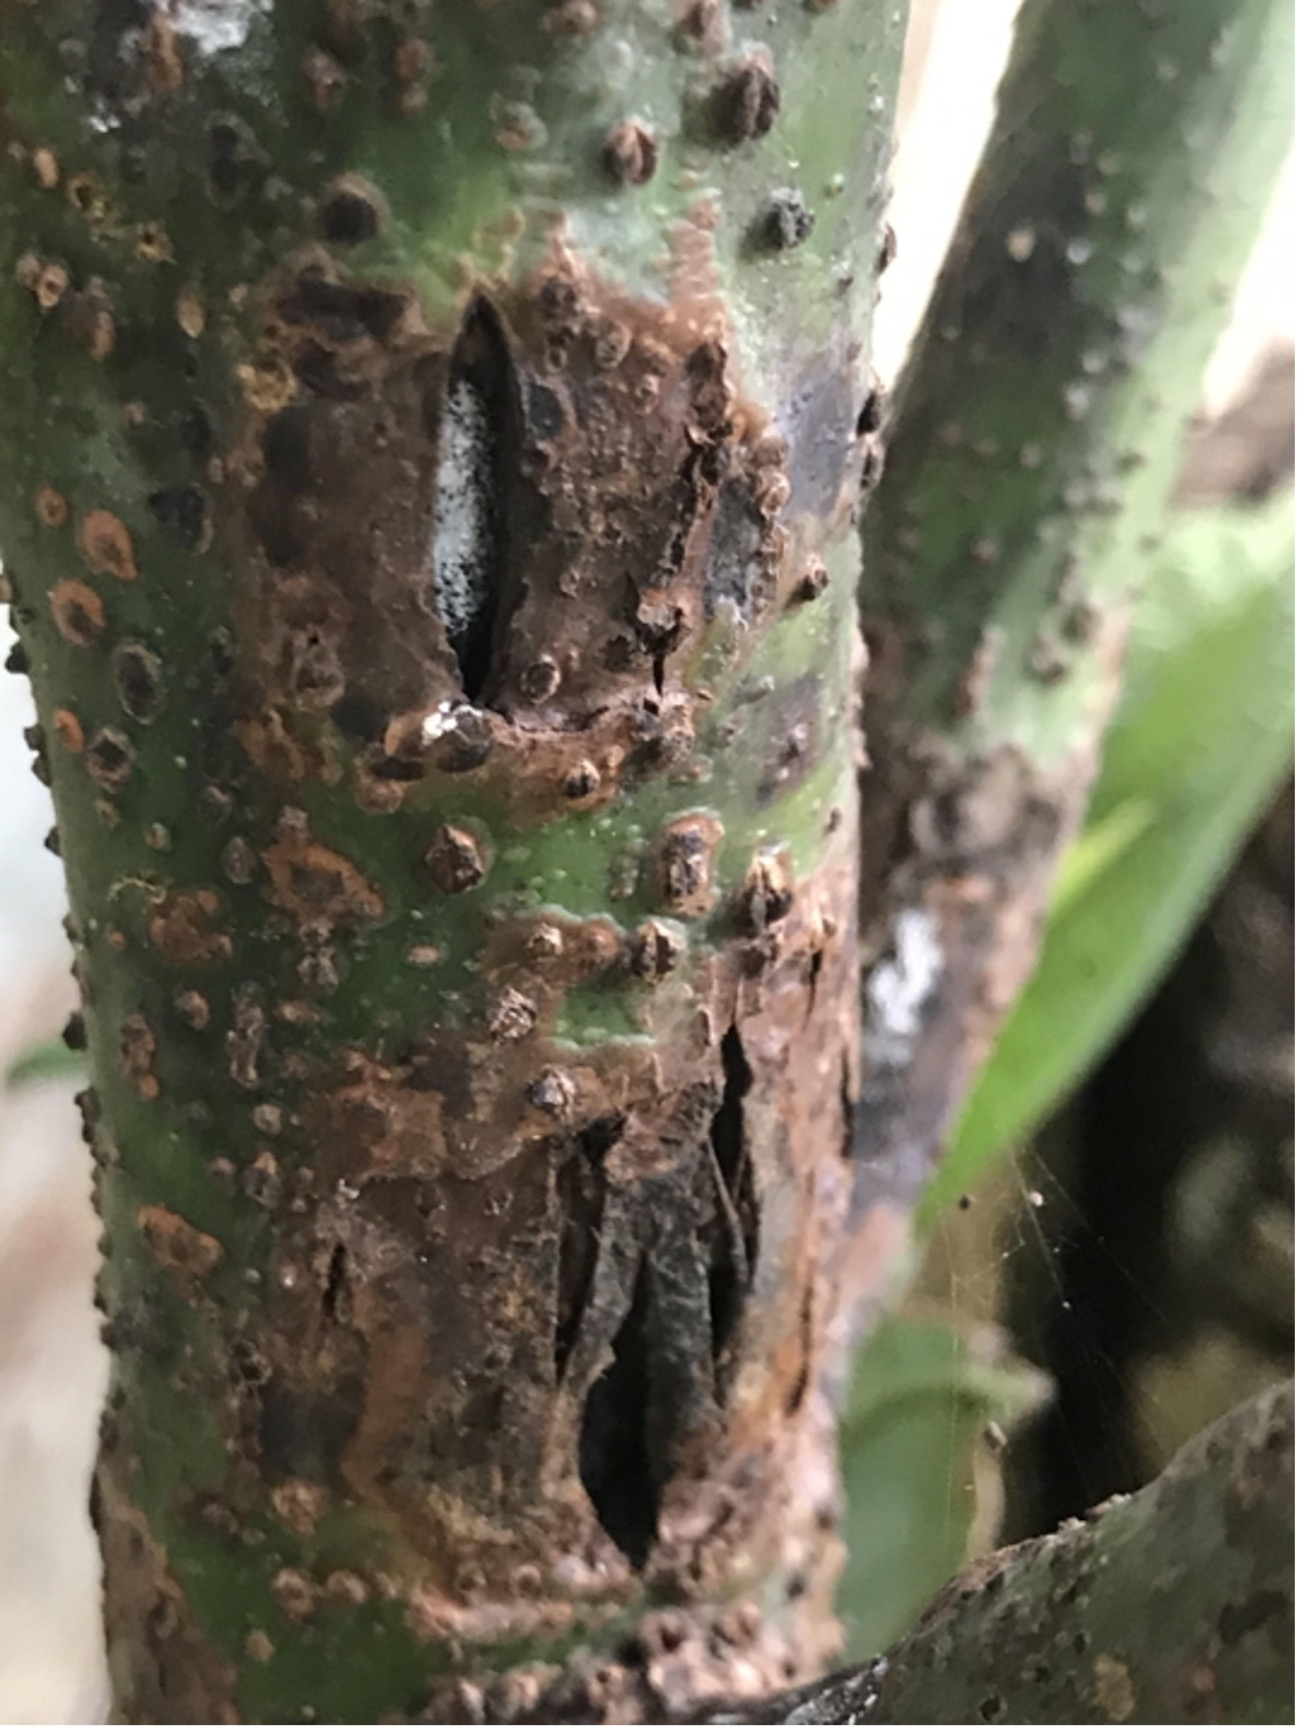 Avocado Branch Cankers Associated with Botryosphaeriaceae Species in Cáqueza, Colombia